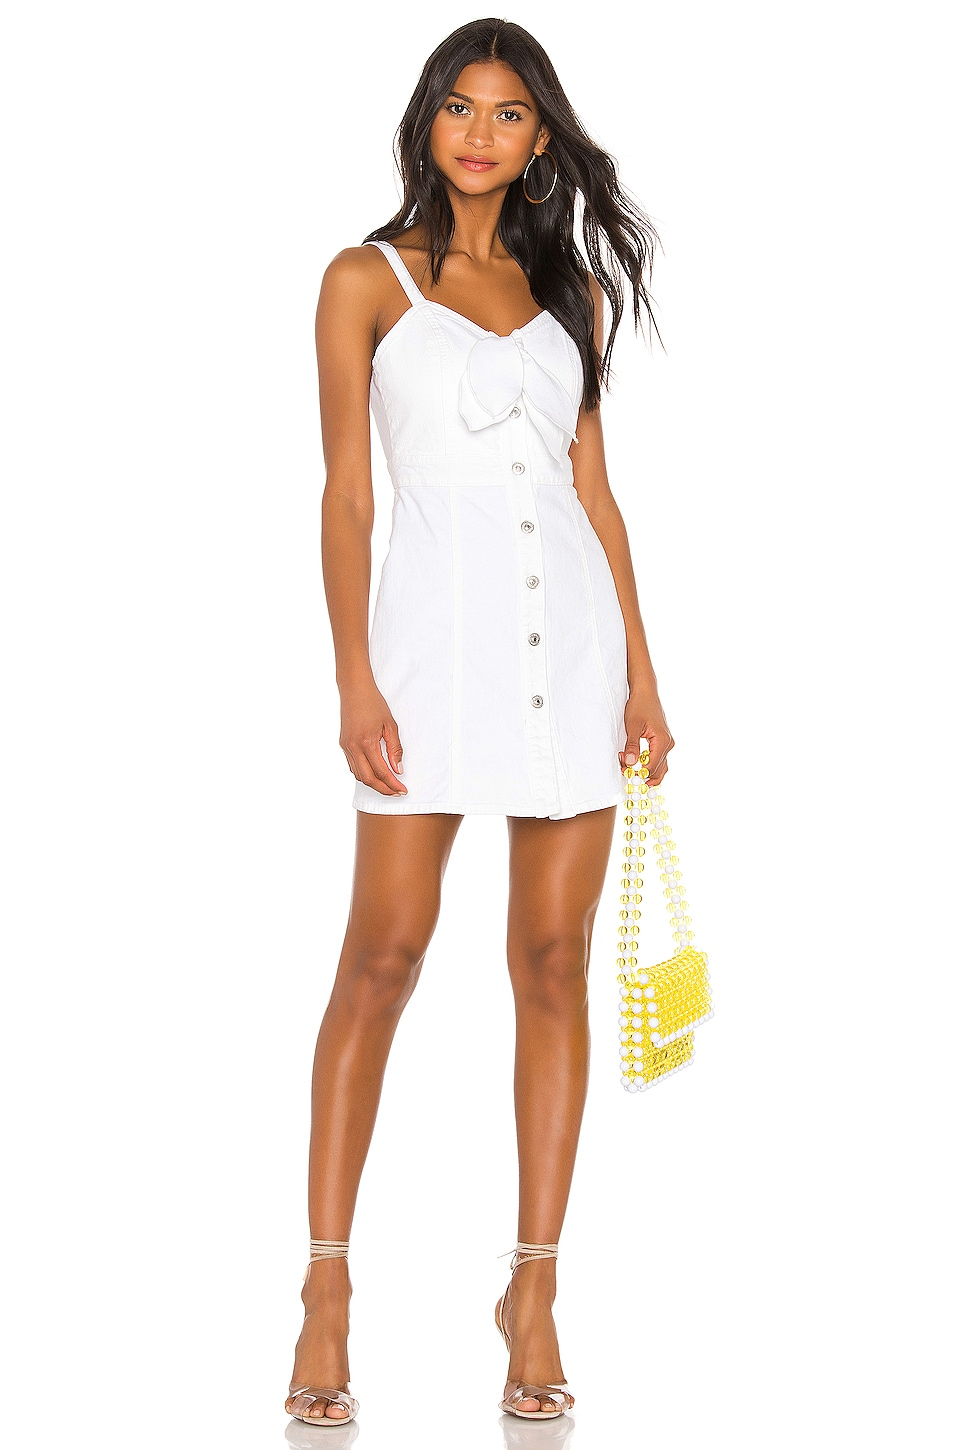 7 For All Mankind Tie Front Dress in White Runaway